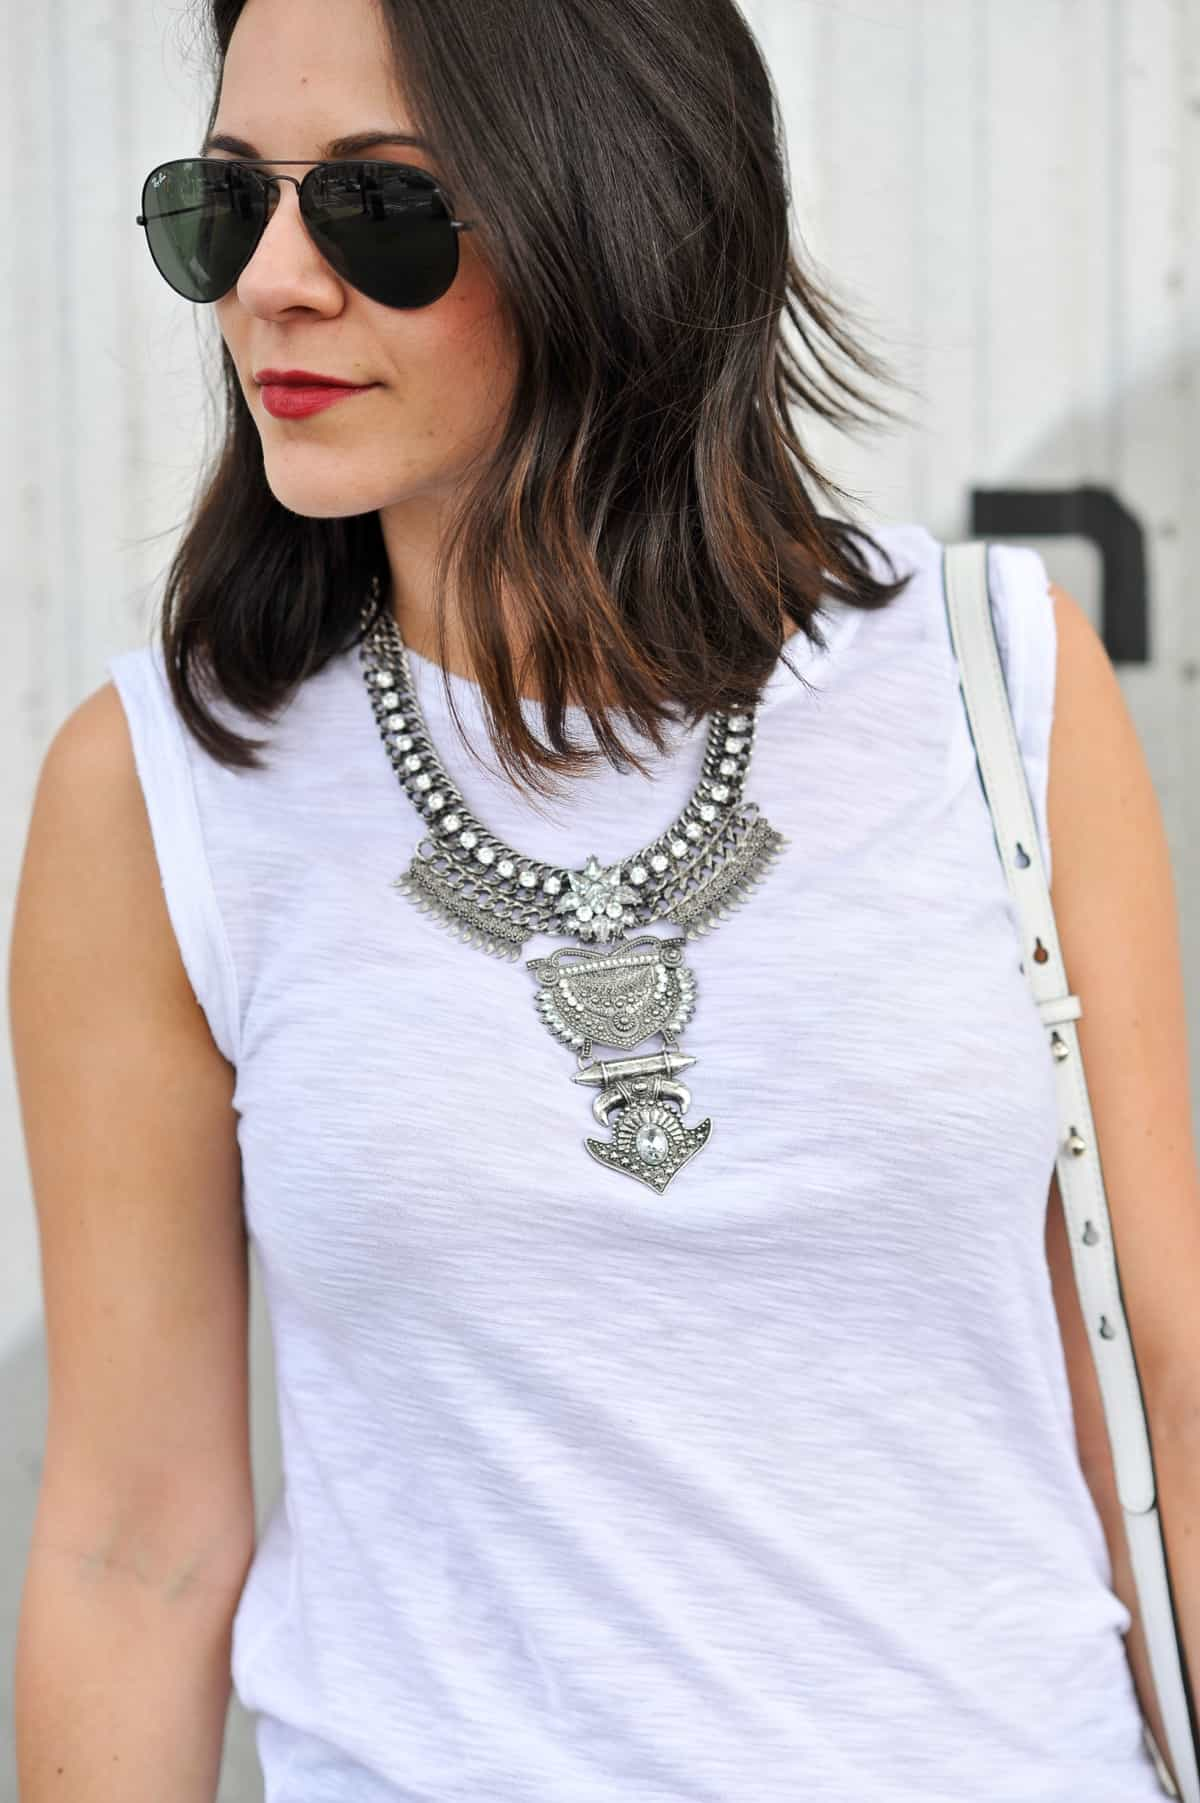 White muscle tee with a statement necklace